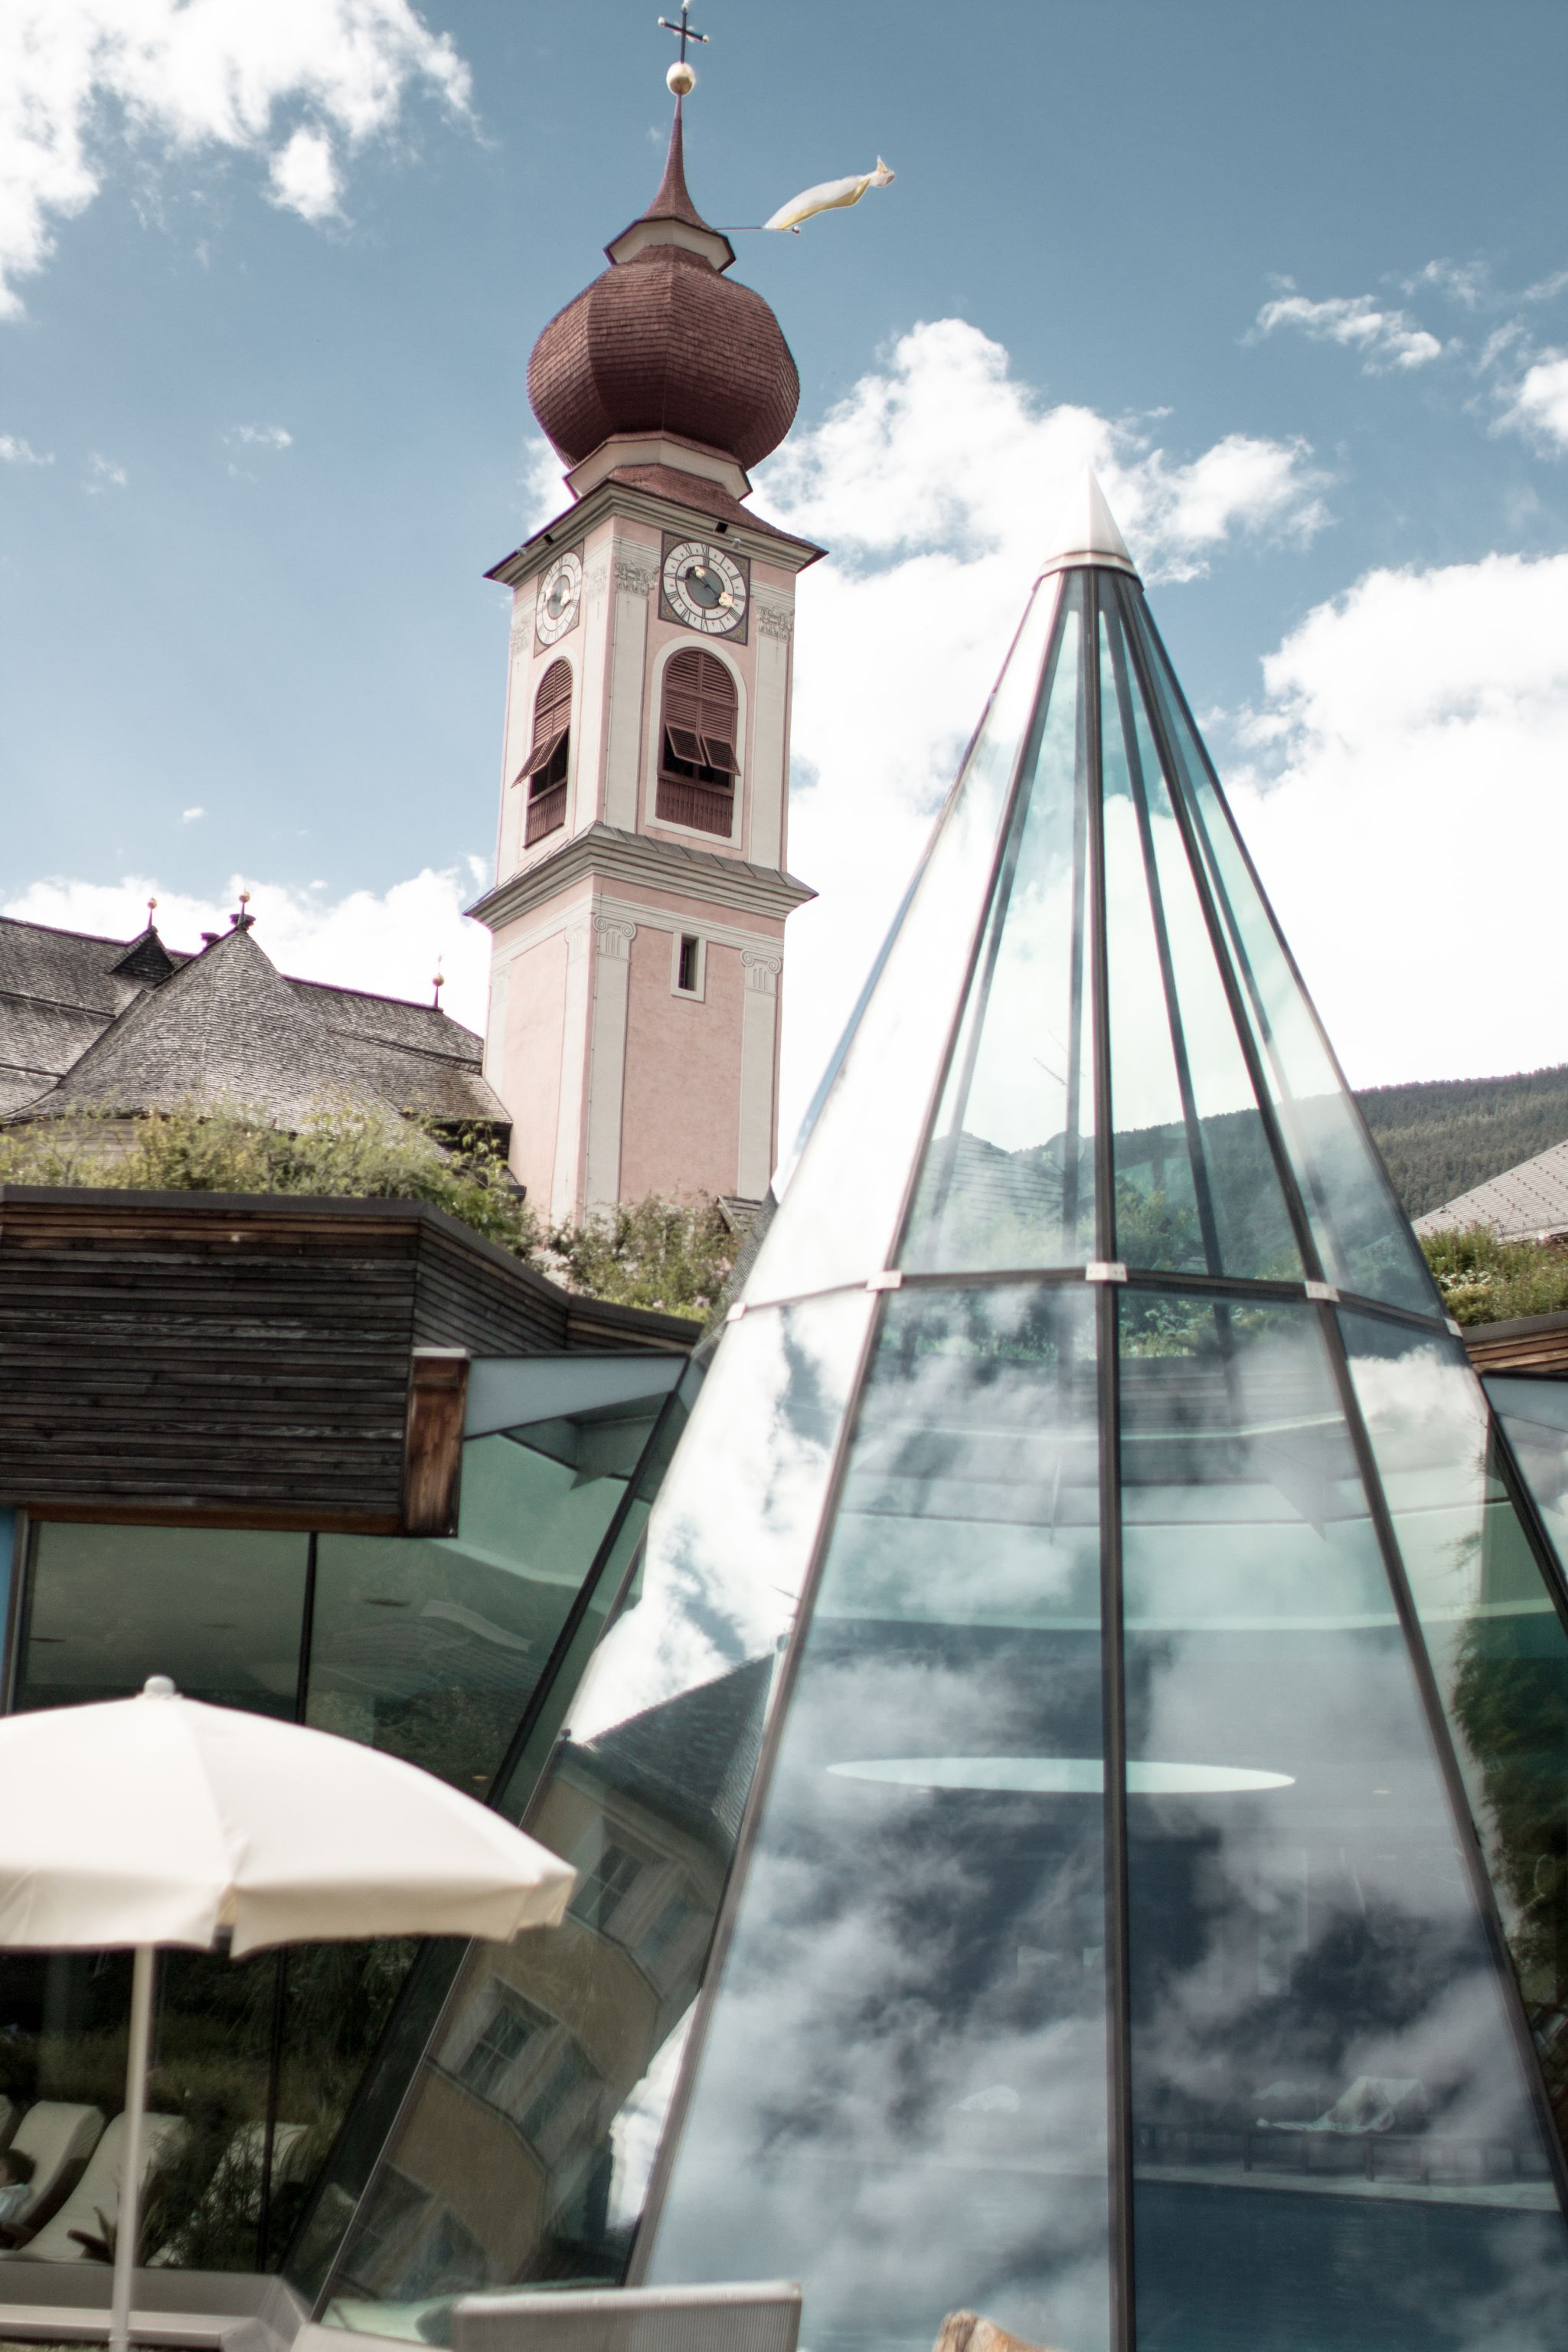 Adler Dolomites Ortisei Italy Hotel Review Exterior Pool Sunshine Glass Pyramid